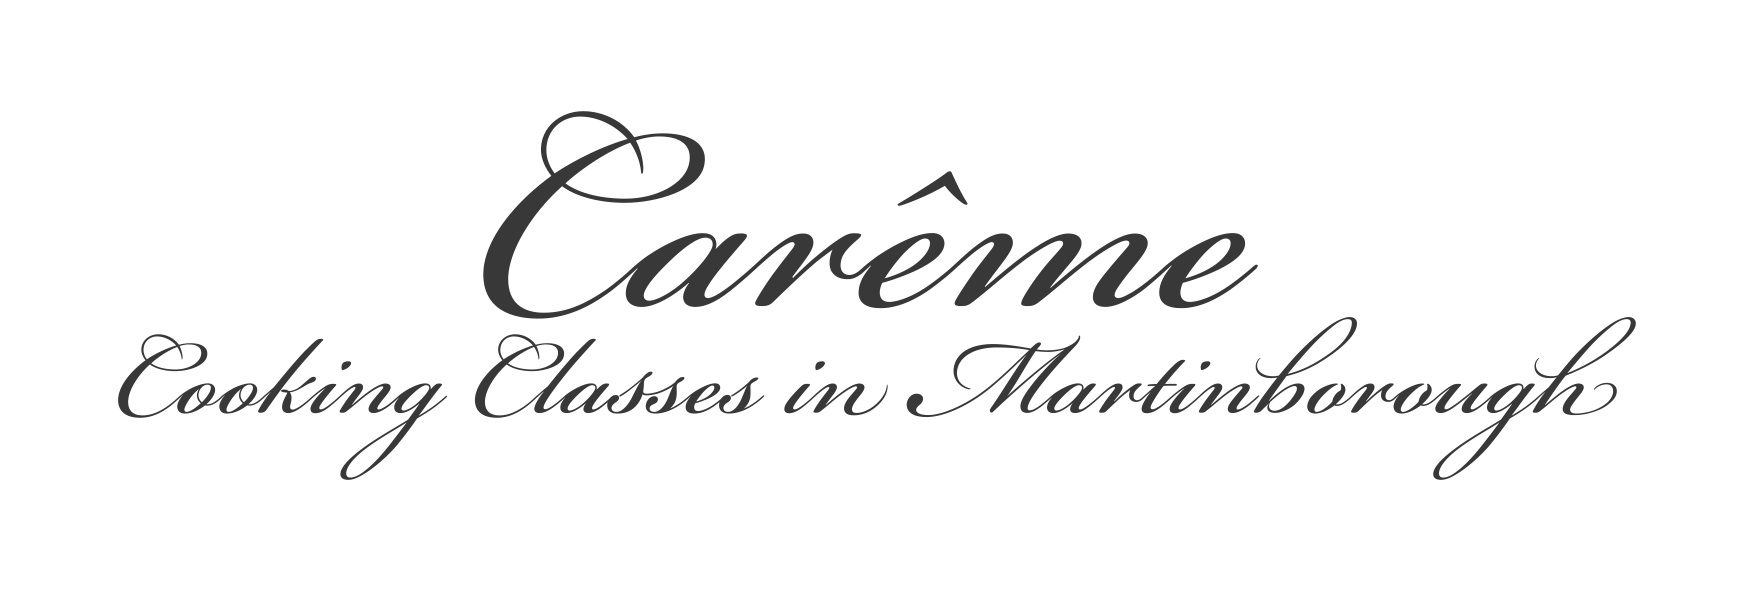 Carême | Cooking classes in Martinborough